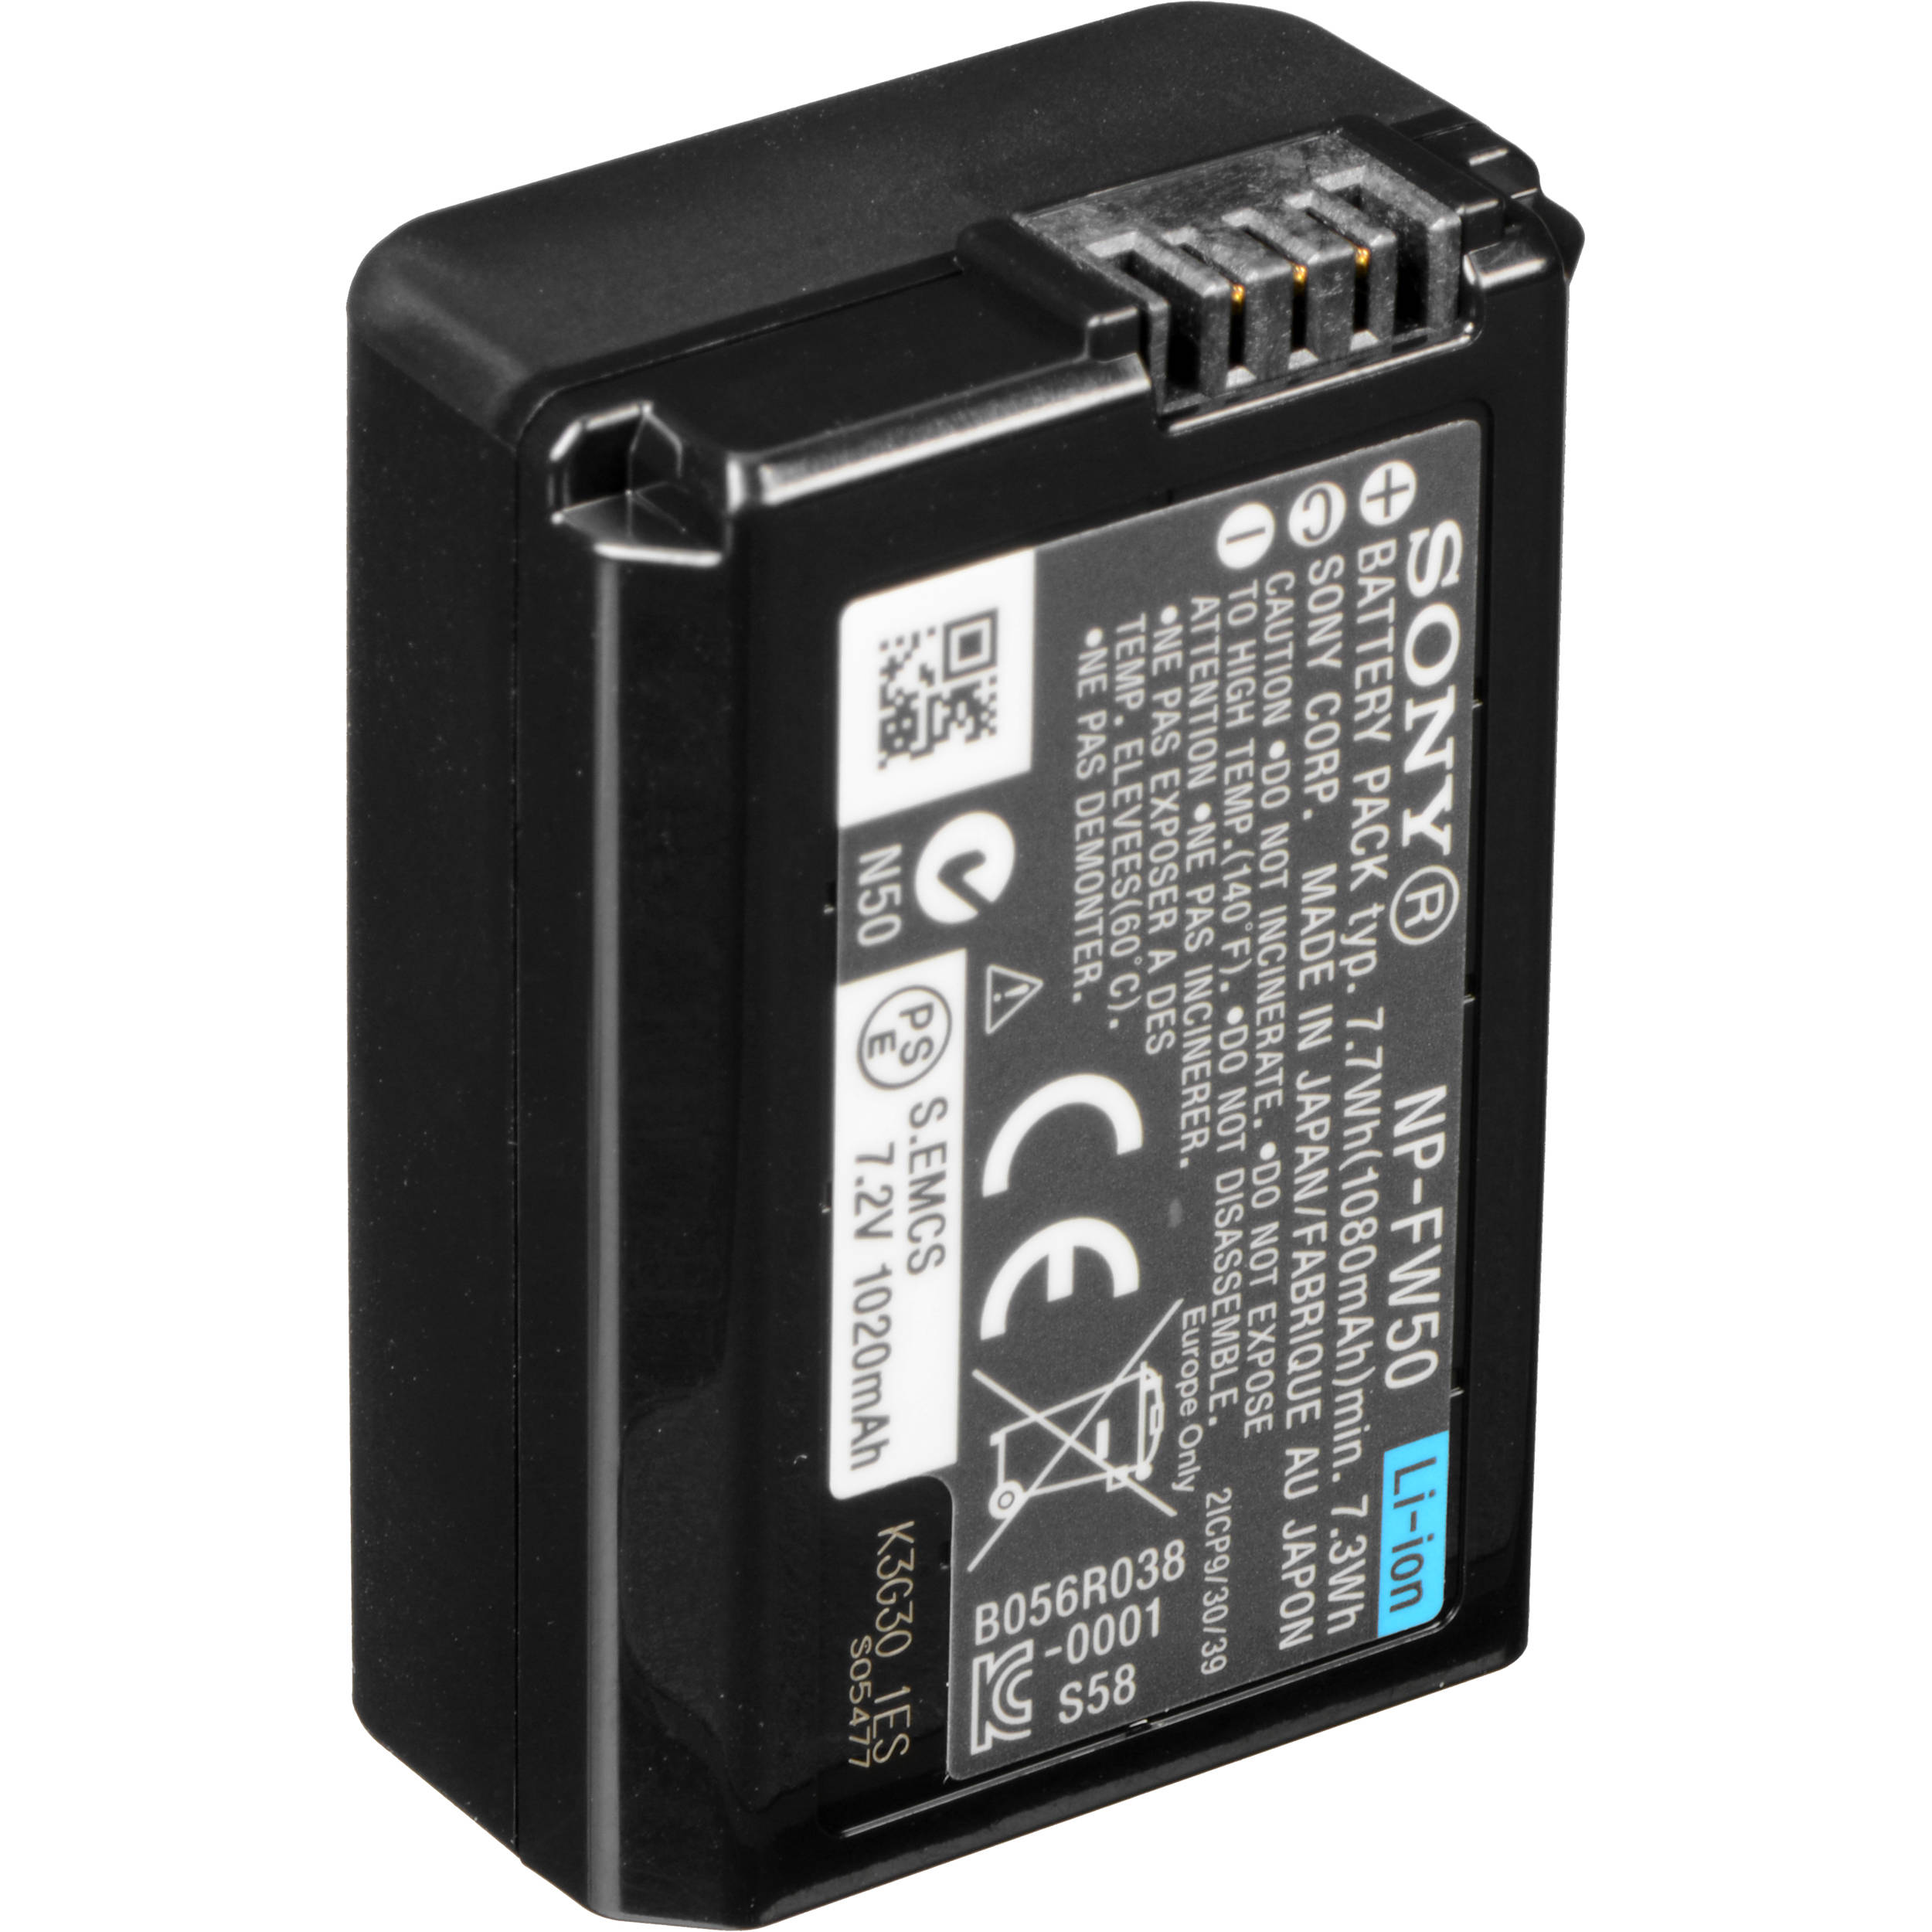 Sony lithium ion camera battery